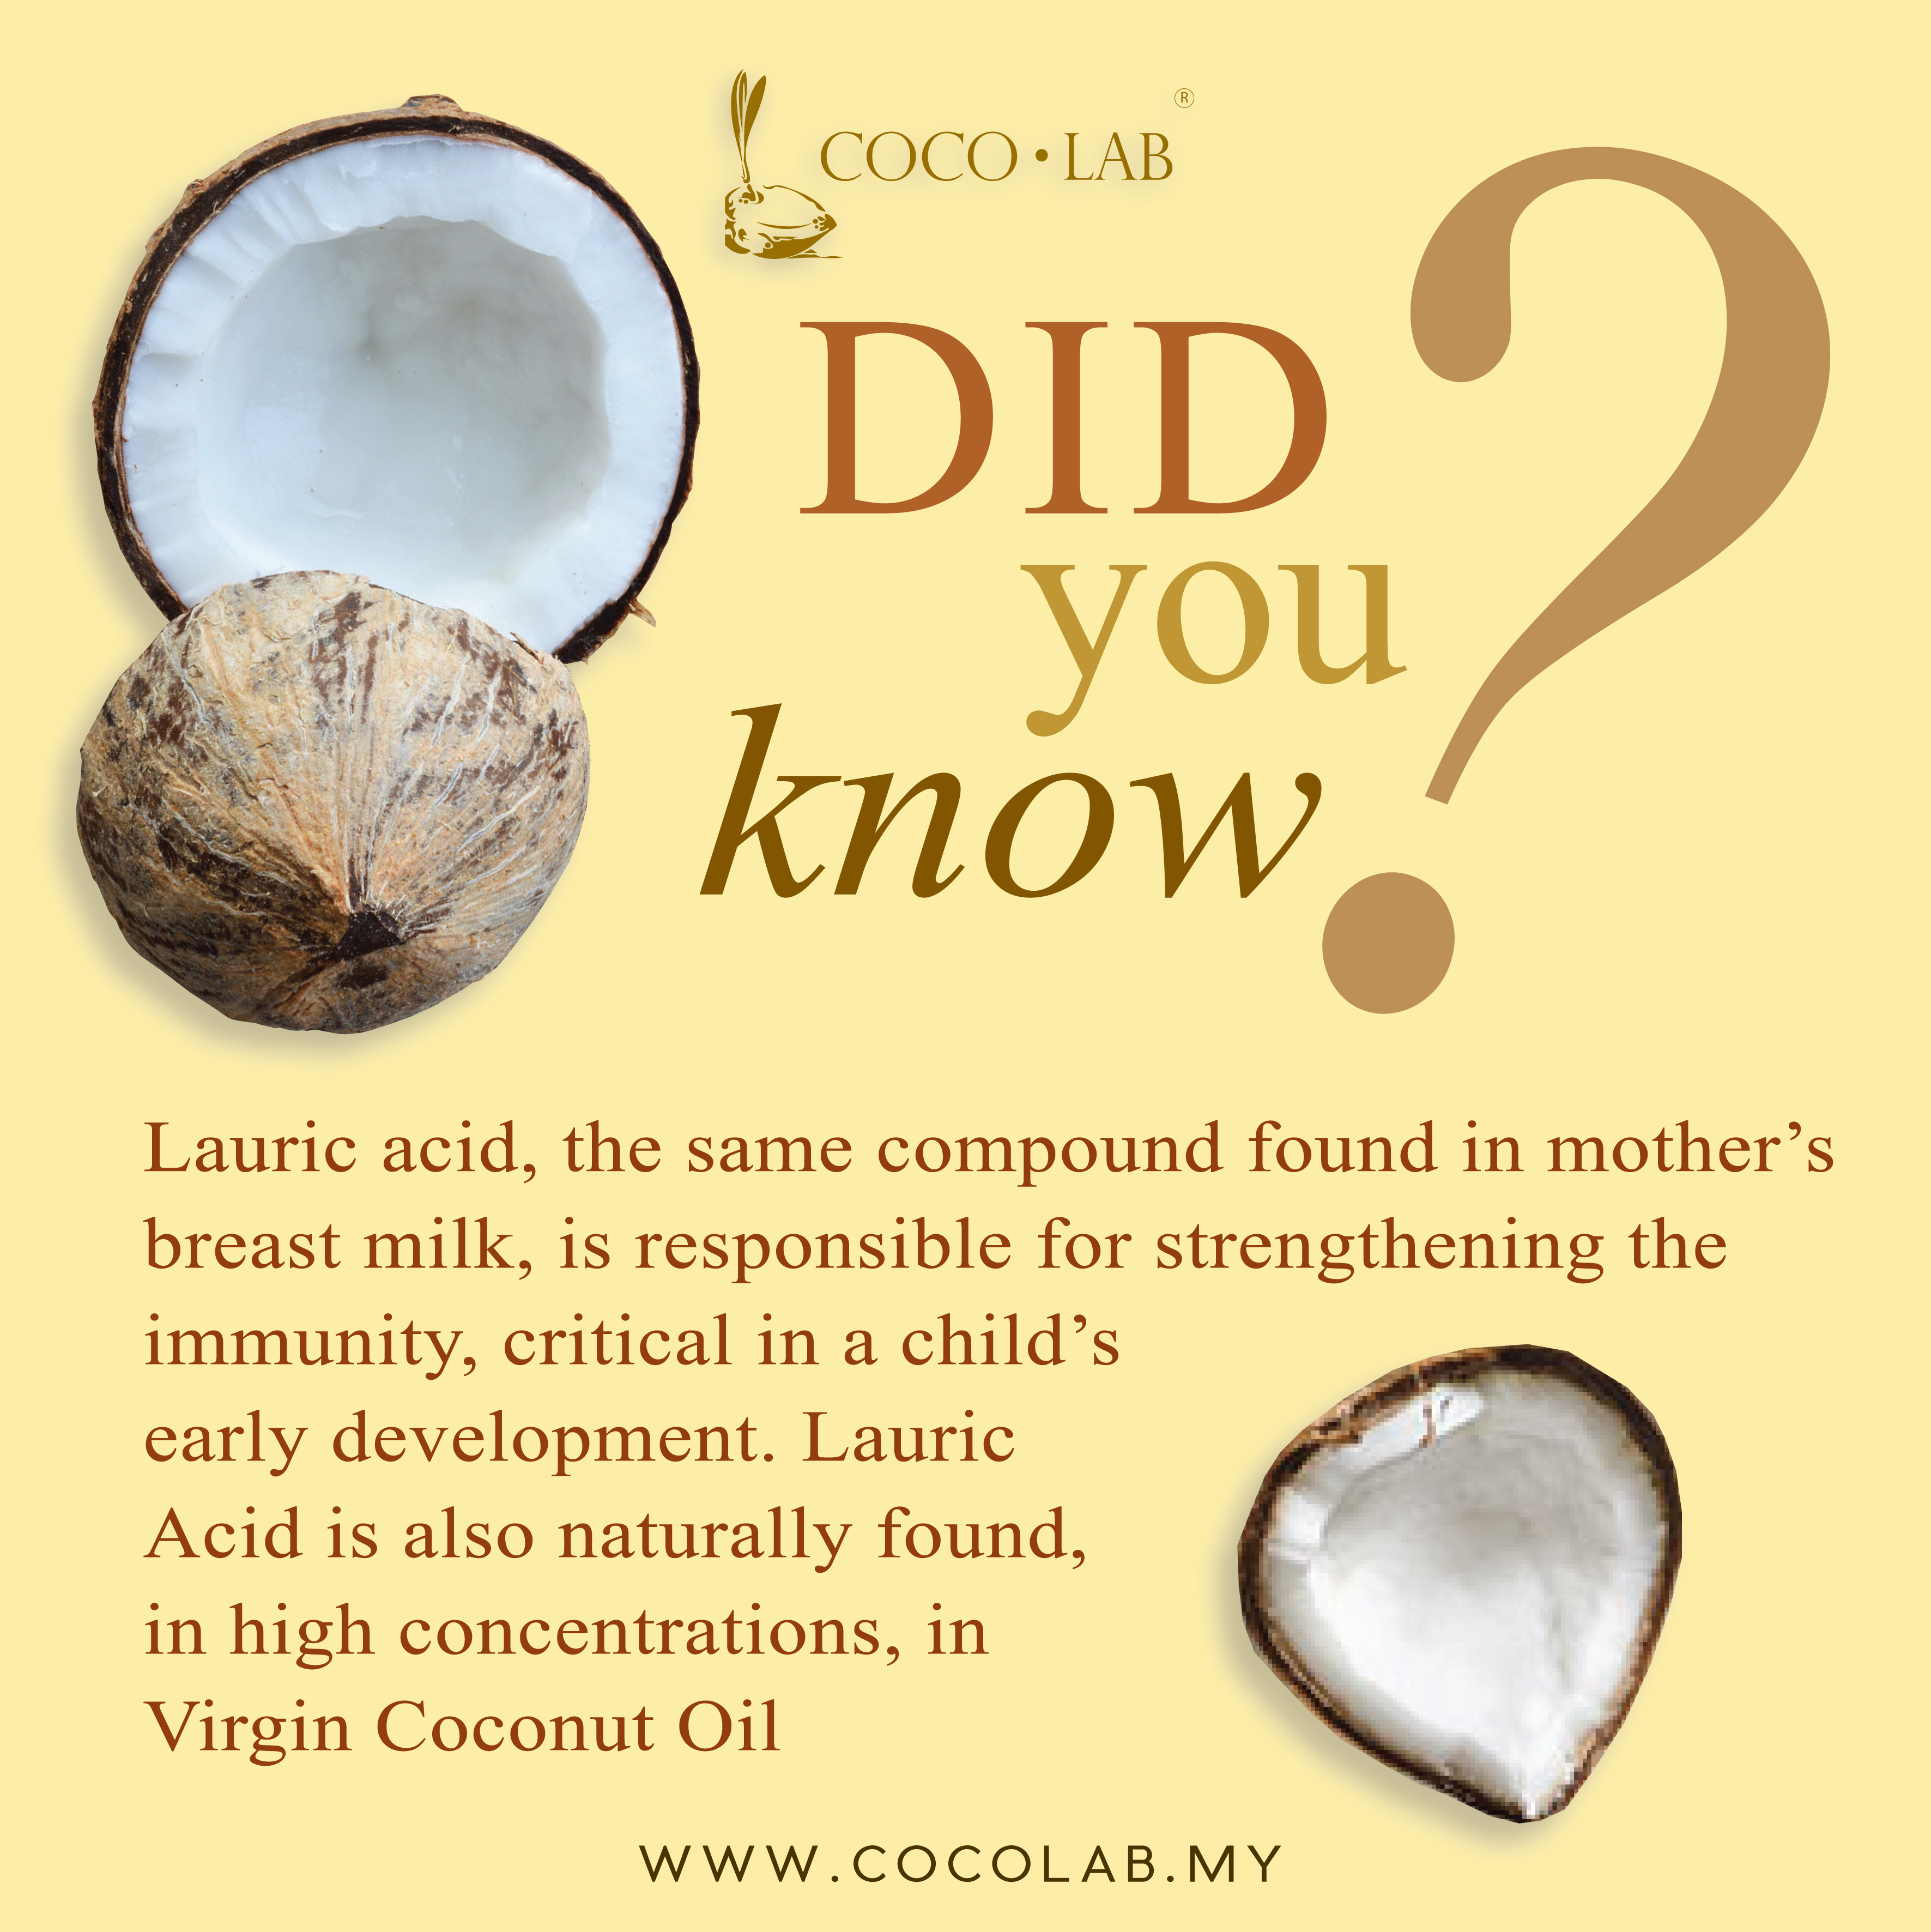 COCOLAB - DID YOU KNOW -Virgin Coconut Oil Lauric Acid